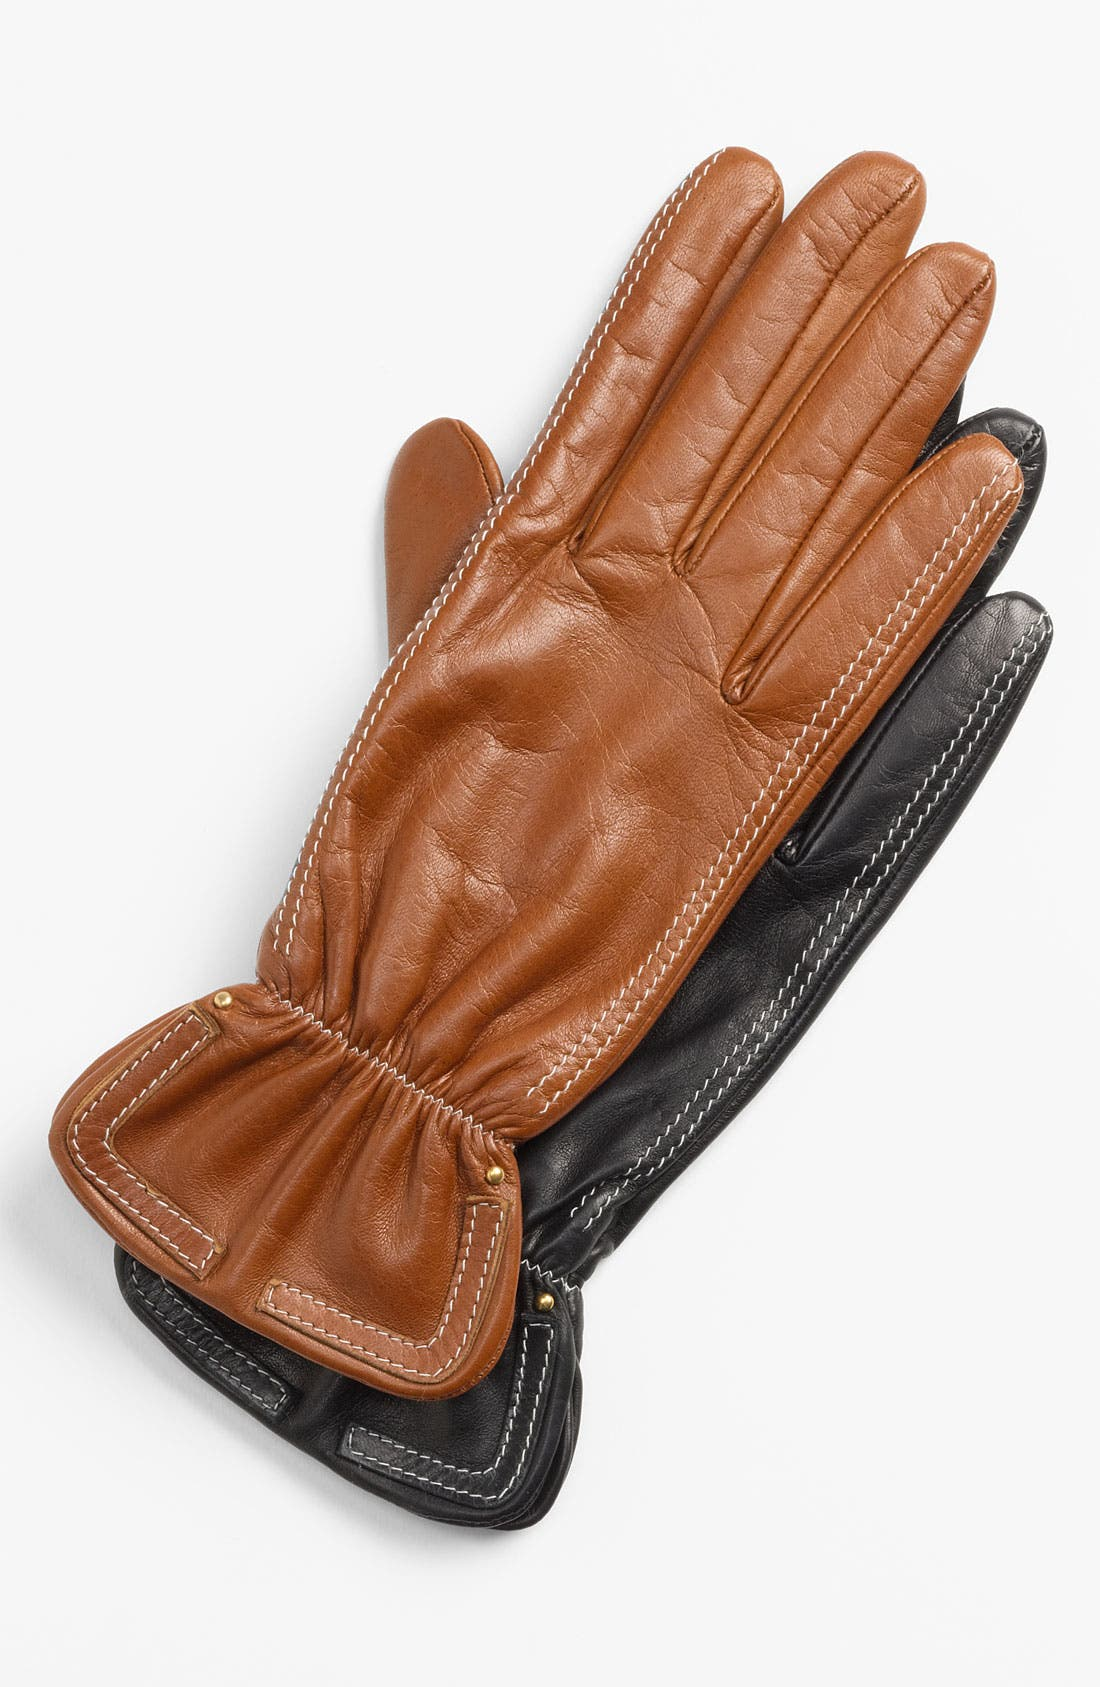 Alternate Image 1 Selected - Nordstrom Contrast Stitch Glacé Leather Gloves